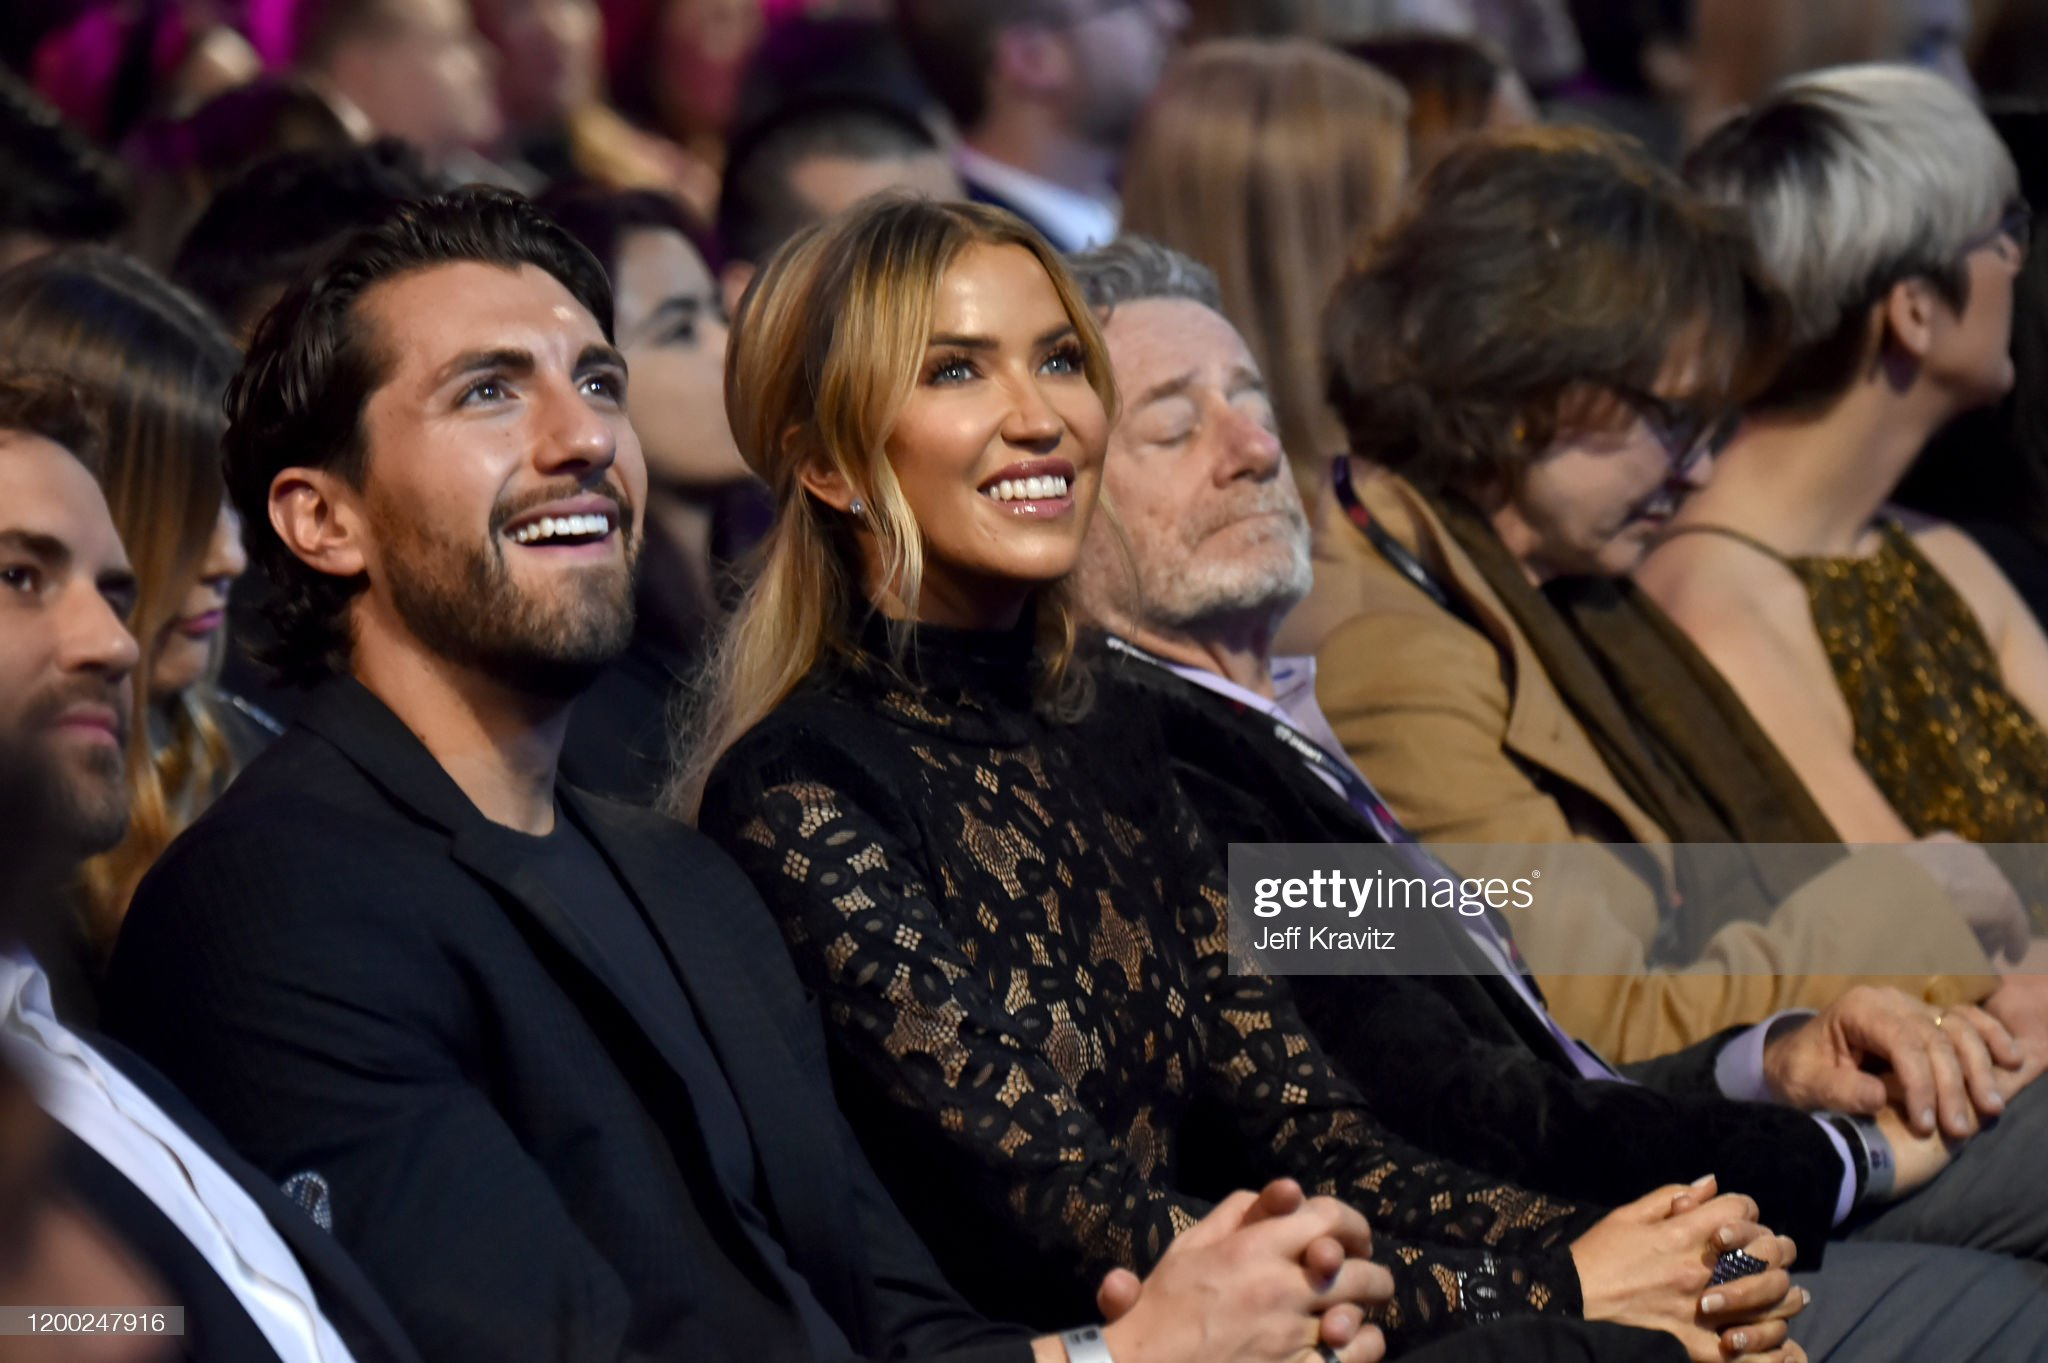 Kaitlyn Bristowe - Jason Tartick - FAN Forum - Discussion  - Page 51 Jason-tartick-and-kaitlyn-bristowe-attend-the-2020-iheartradio-at-picture-id1200247916?s=2048x2048